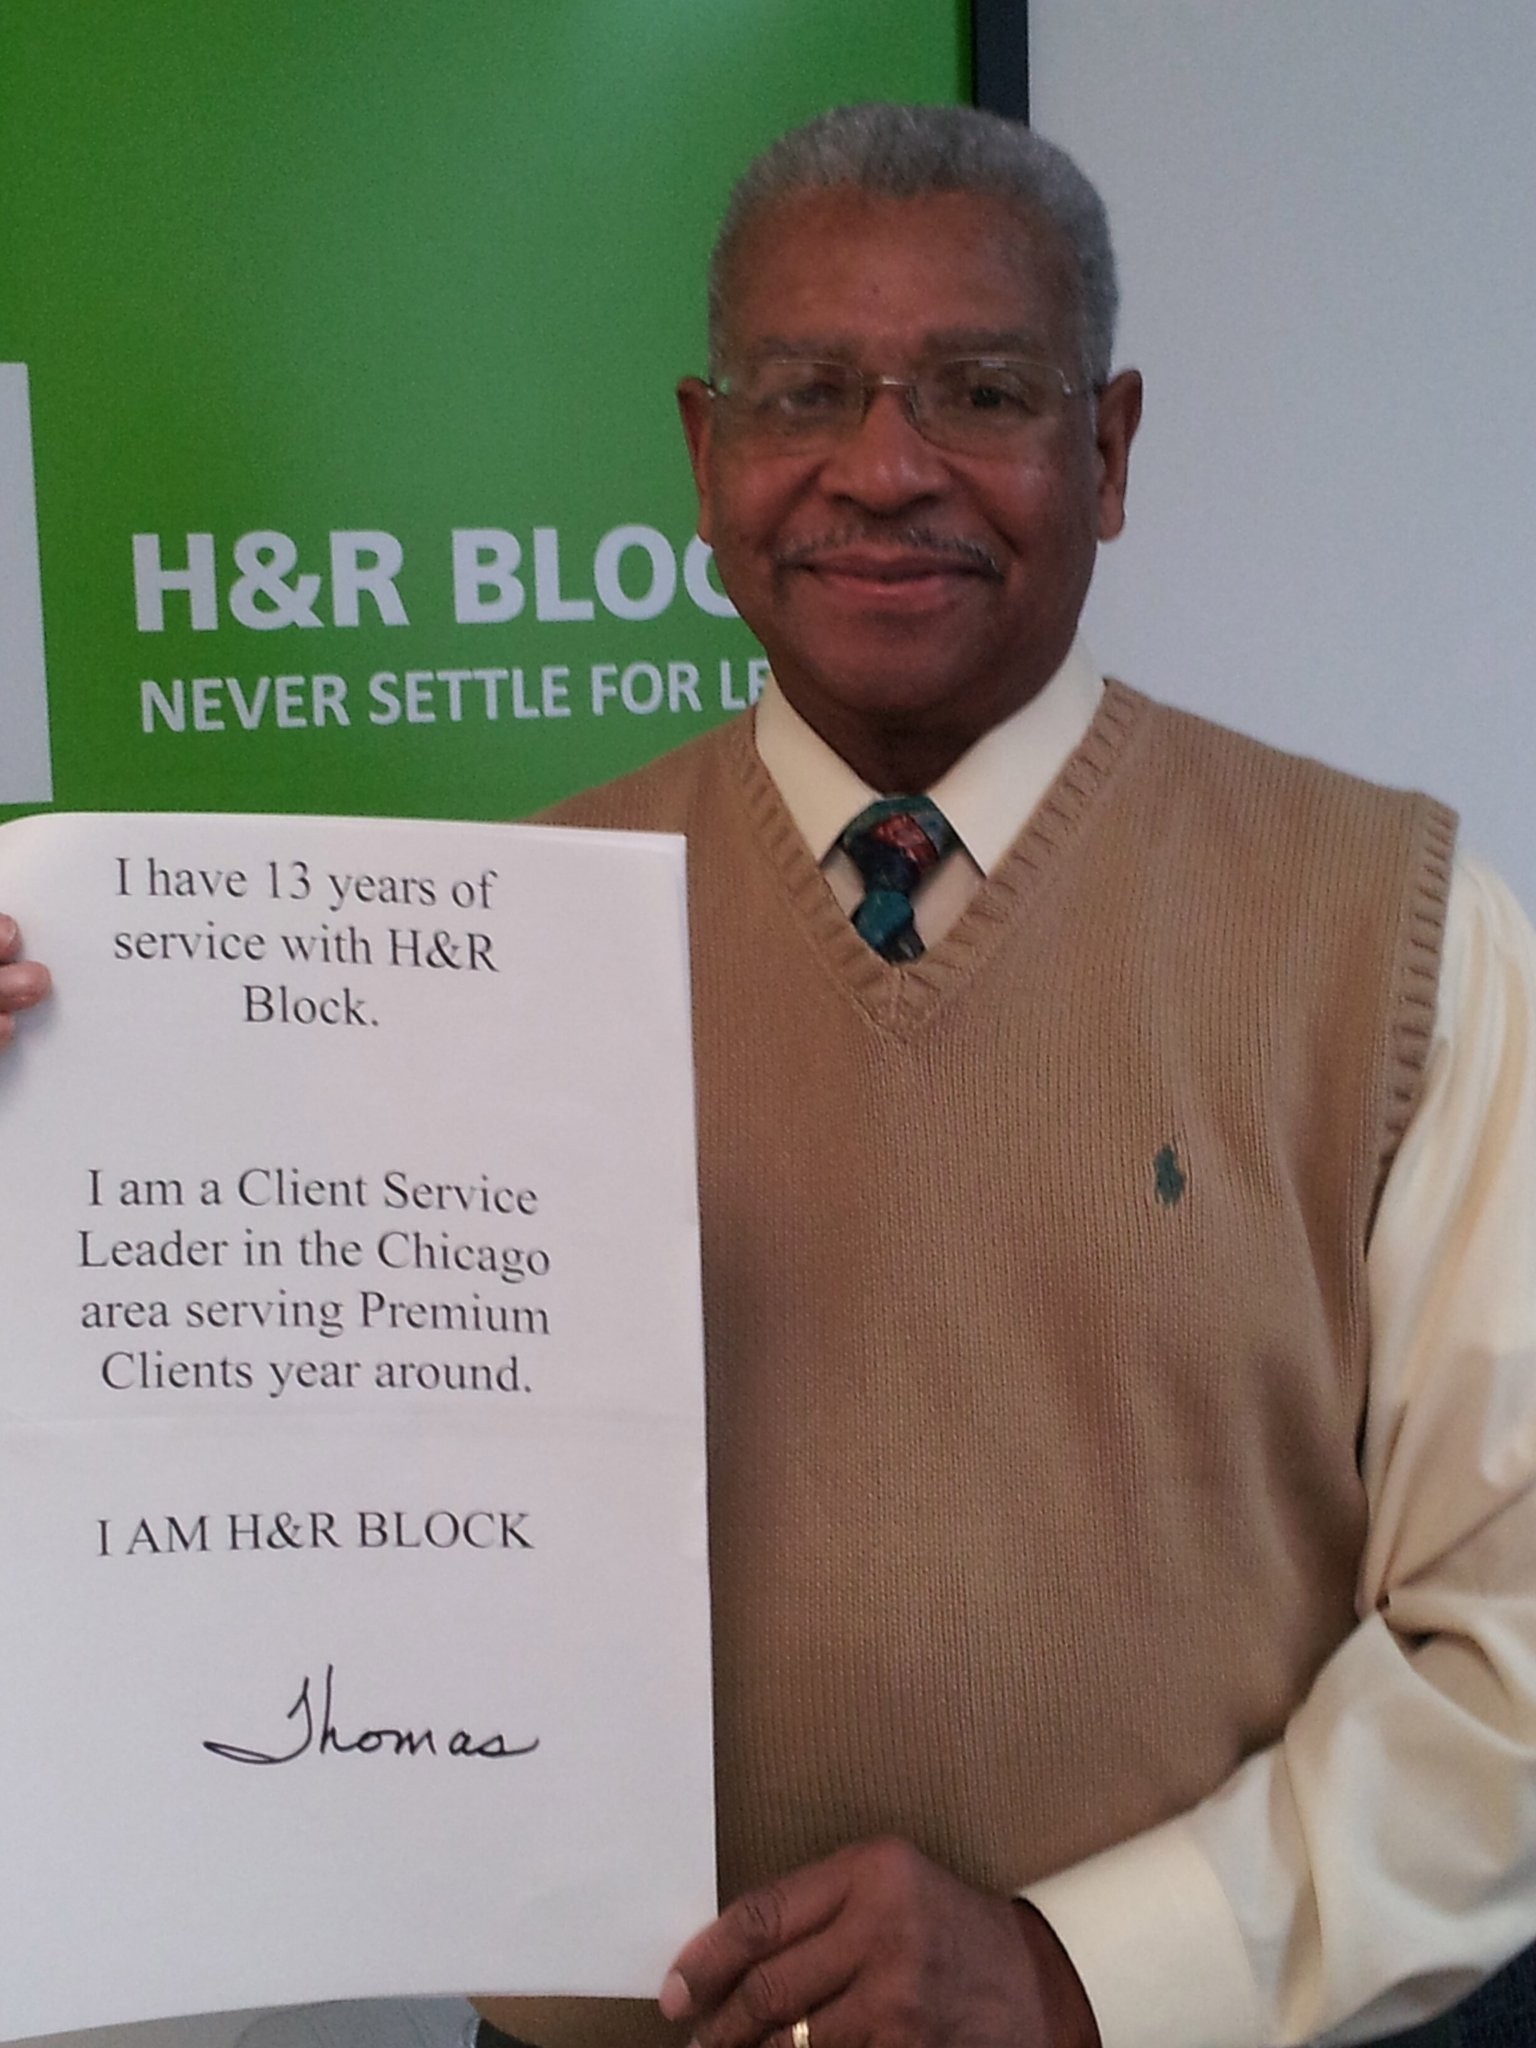 H&R Block's Twitter Photo